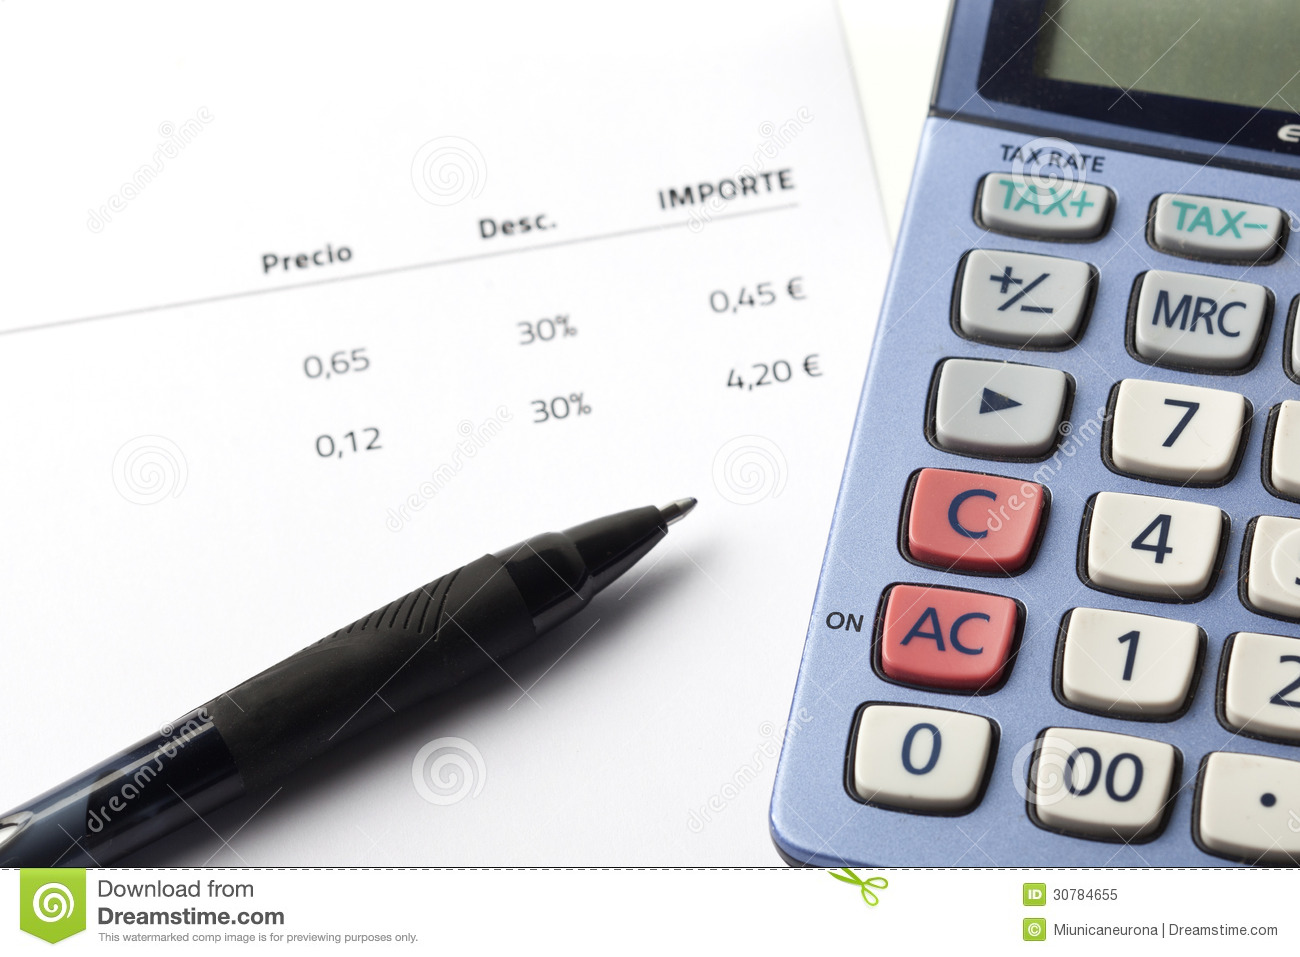 Accounting And Tax Royalty Free Stock Photo - Image: 30784655